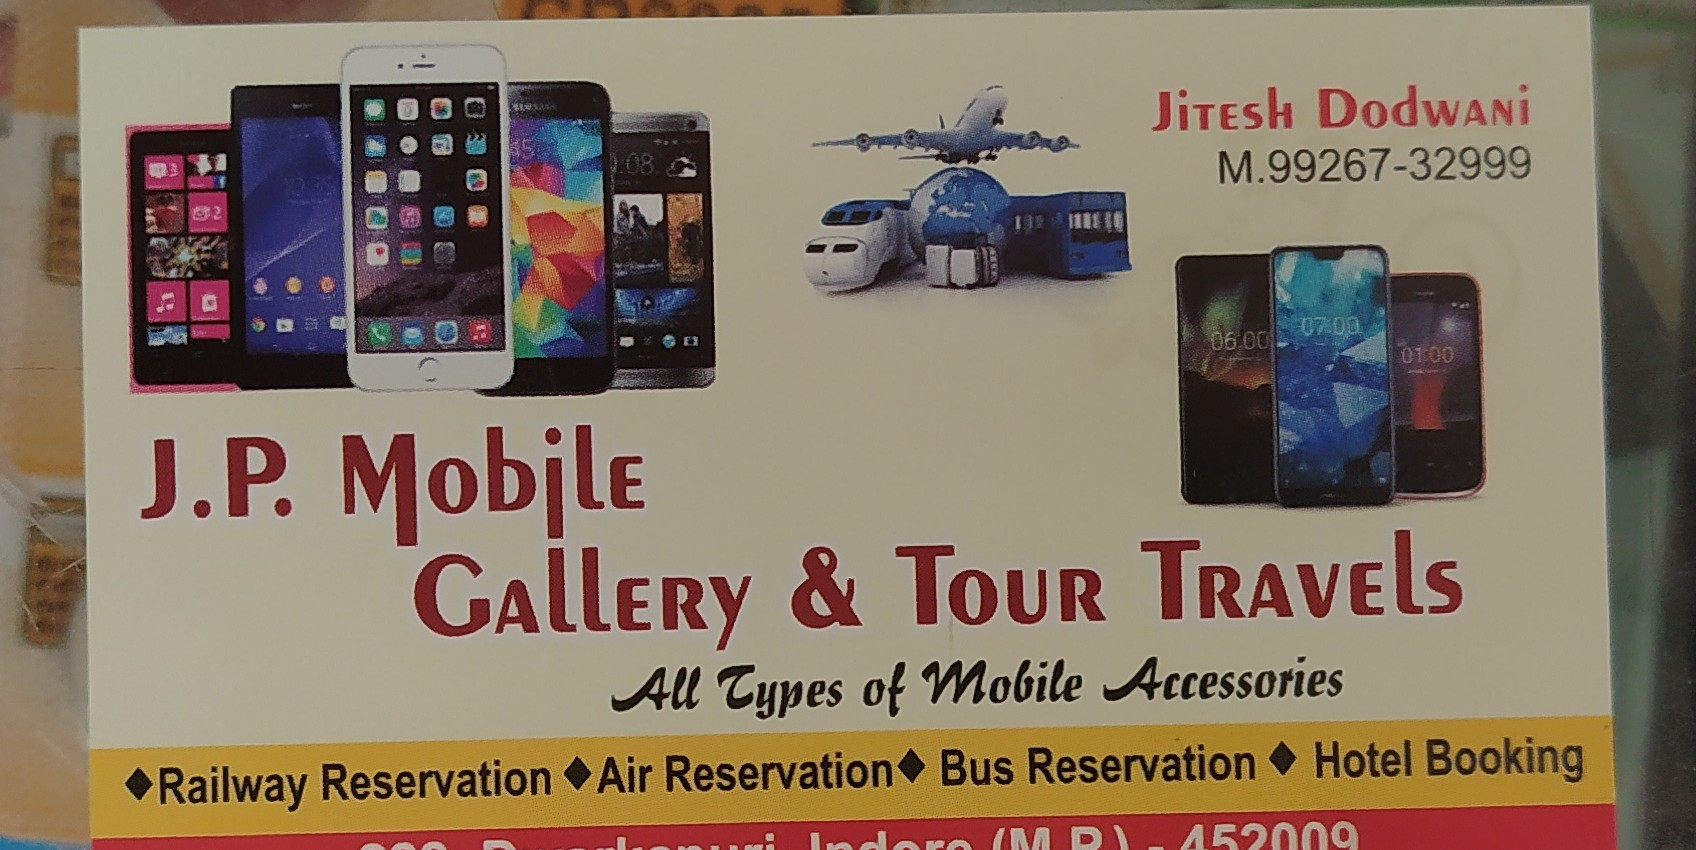 J.P. mobile gallery